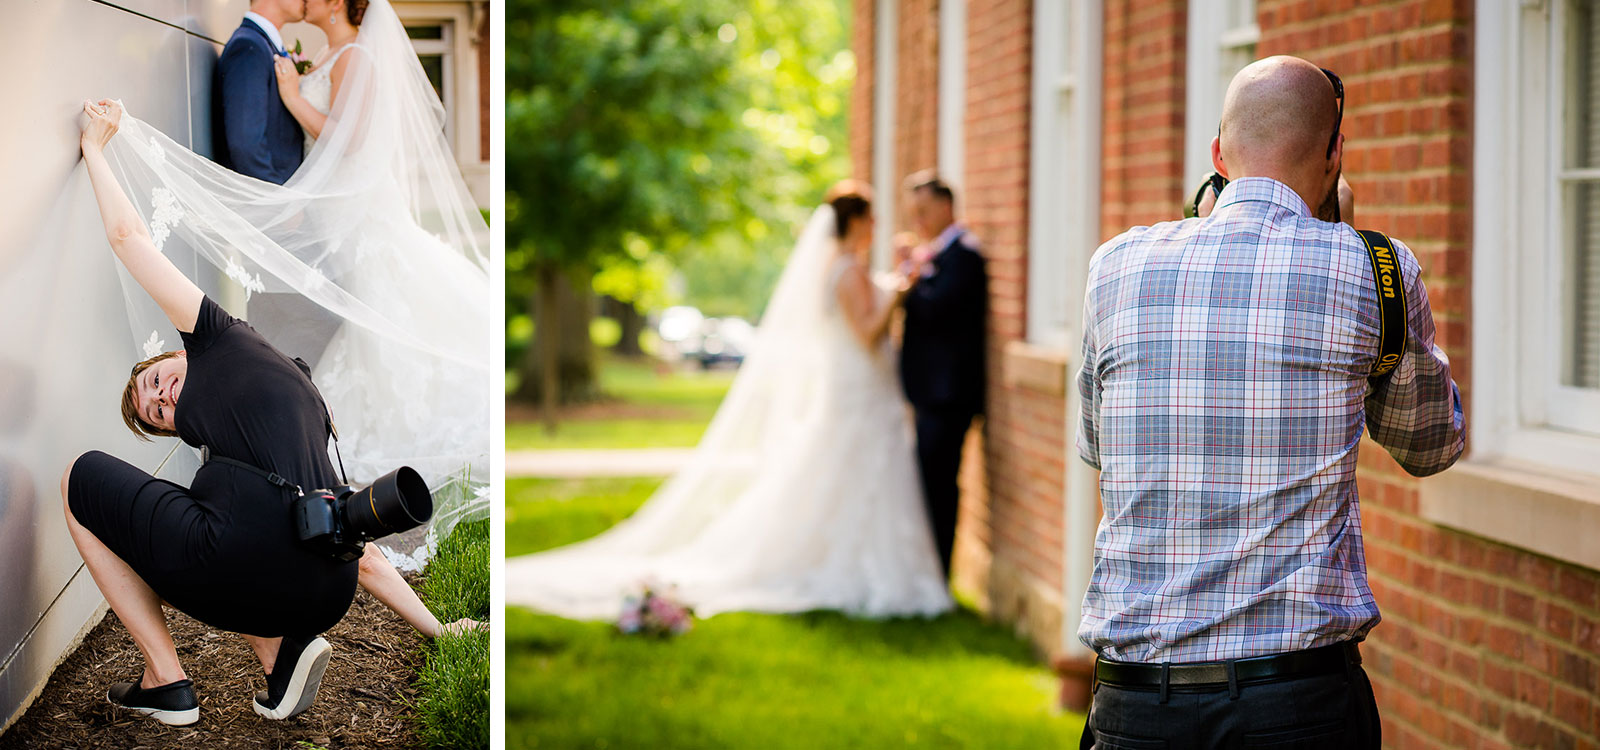 Eric_and_Christy_Photography_Blog_Wedding_Paige_Eric-75-76